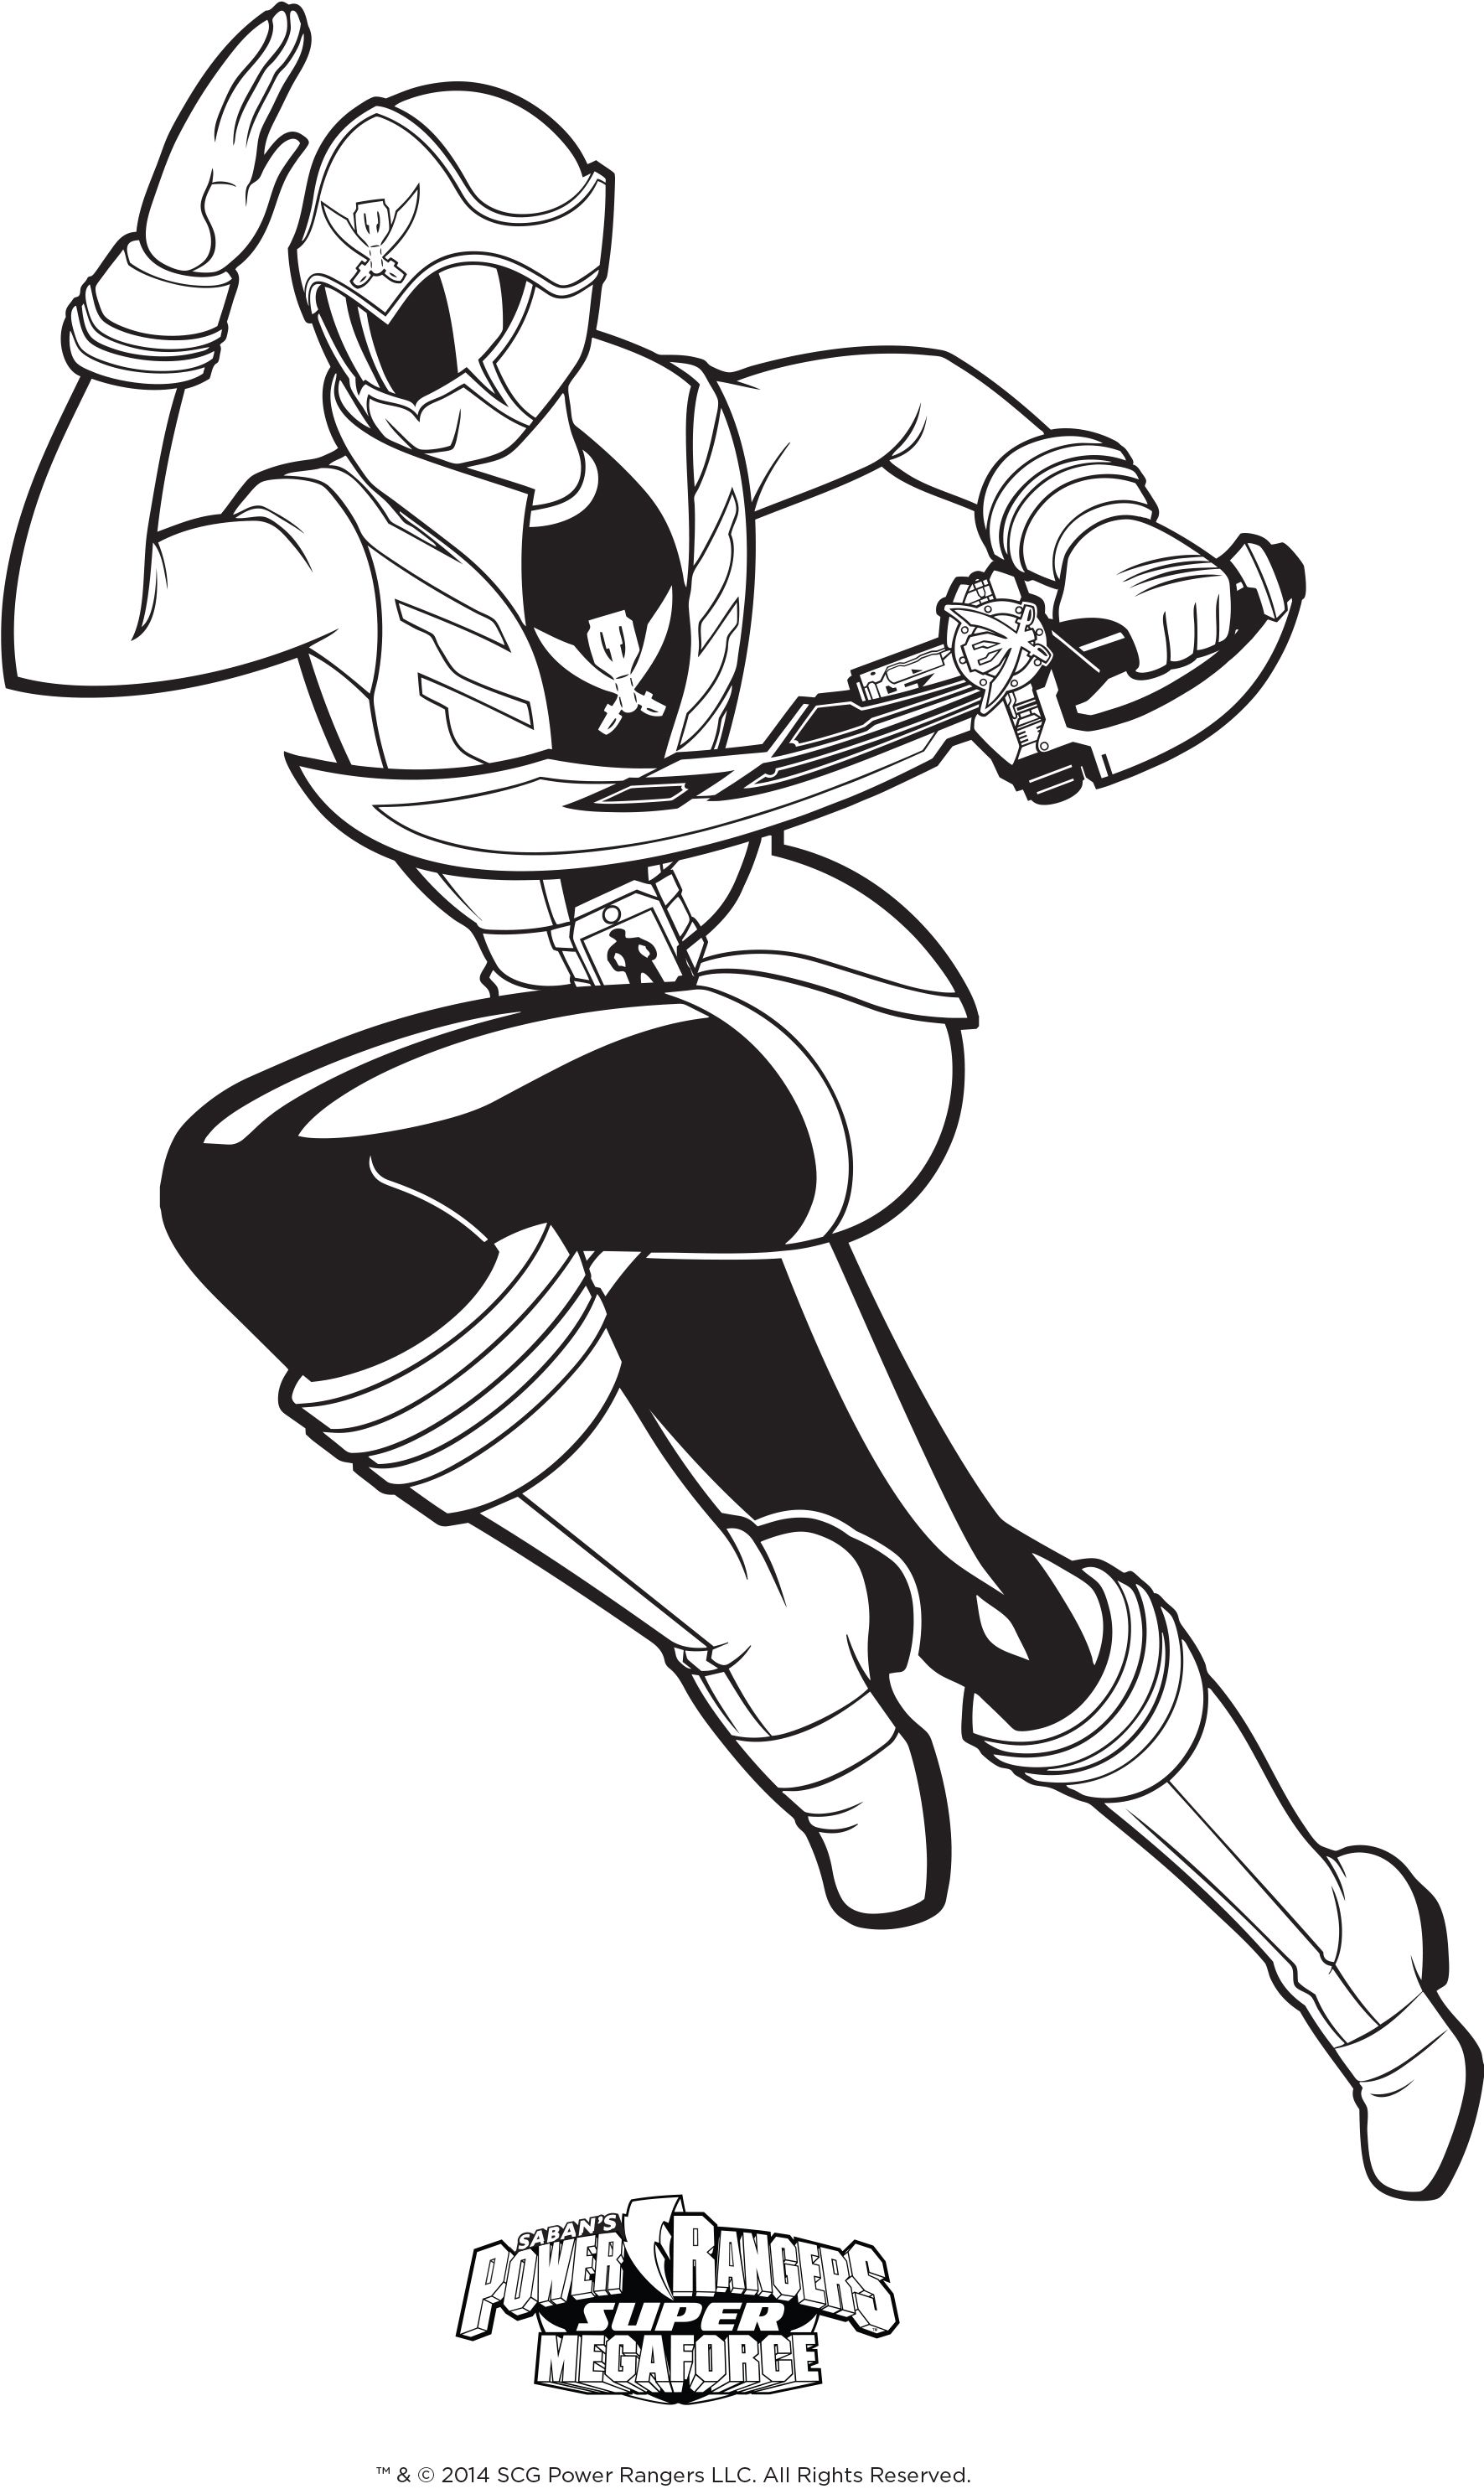 Power Rangers Coloring Page Super Megaforce Pink Ranger Kids